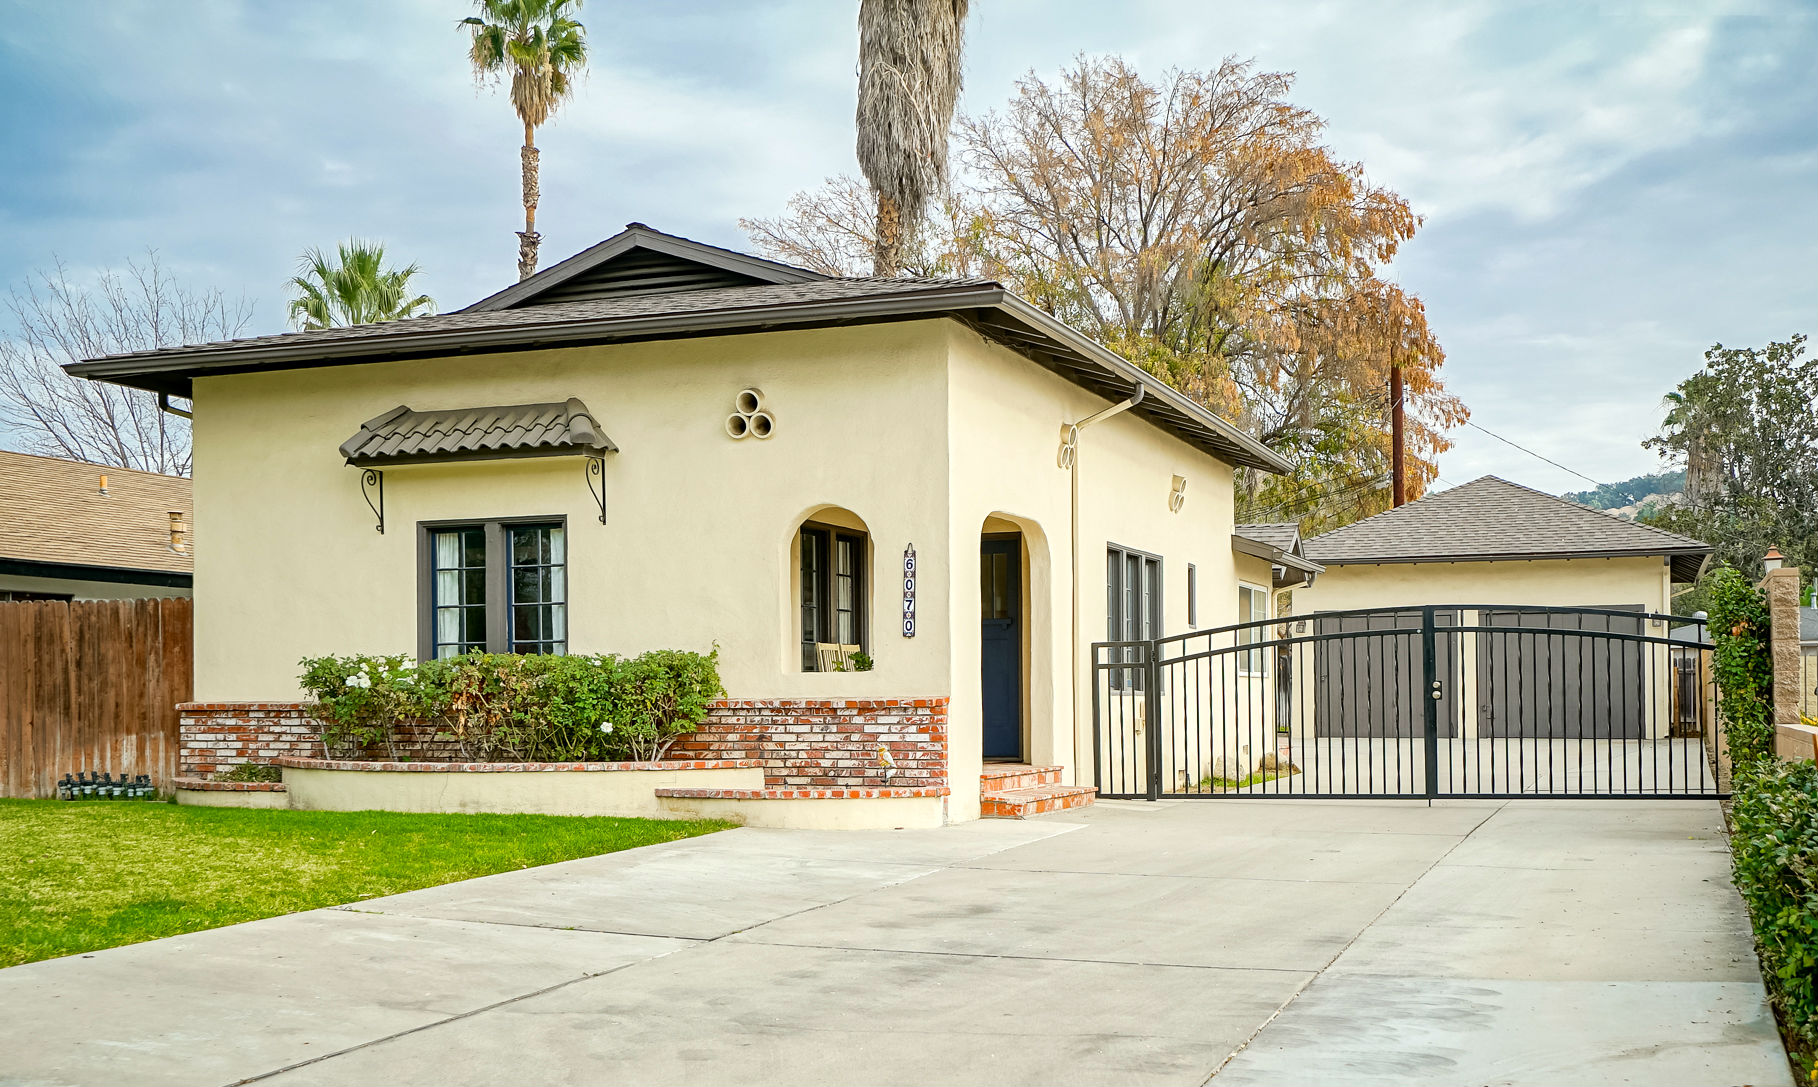 6070 Riverside Avenue, Riverside CA 92506 listed by THE SISTER TEAM